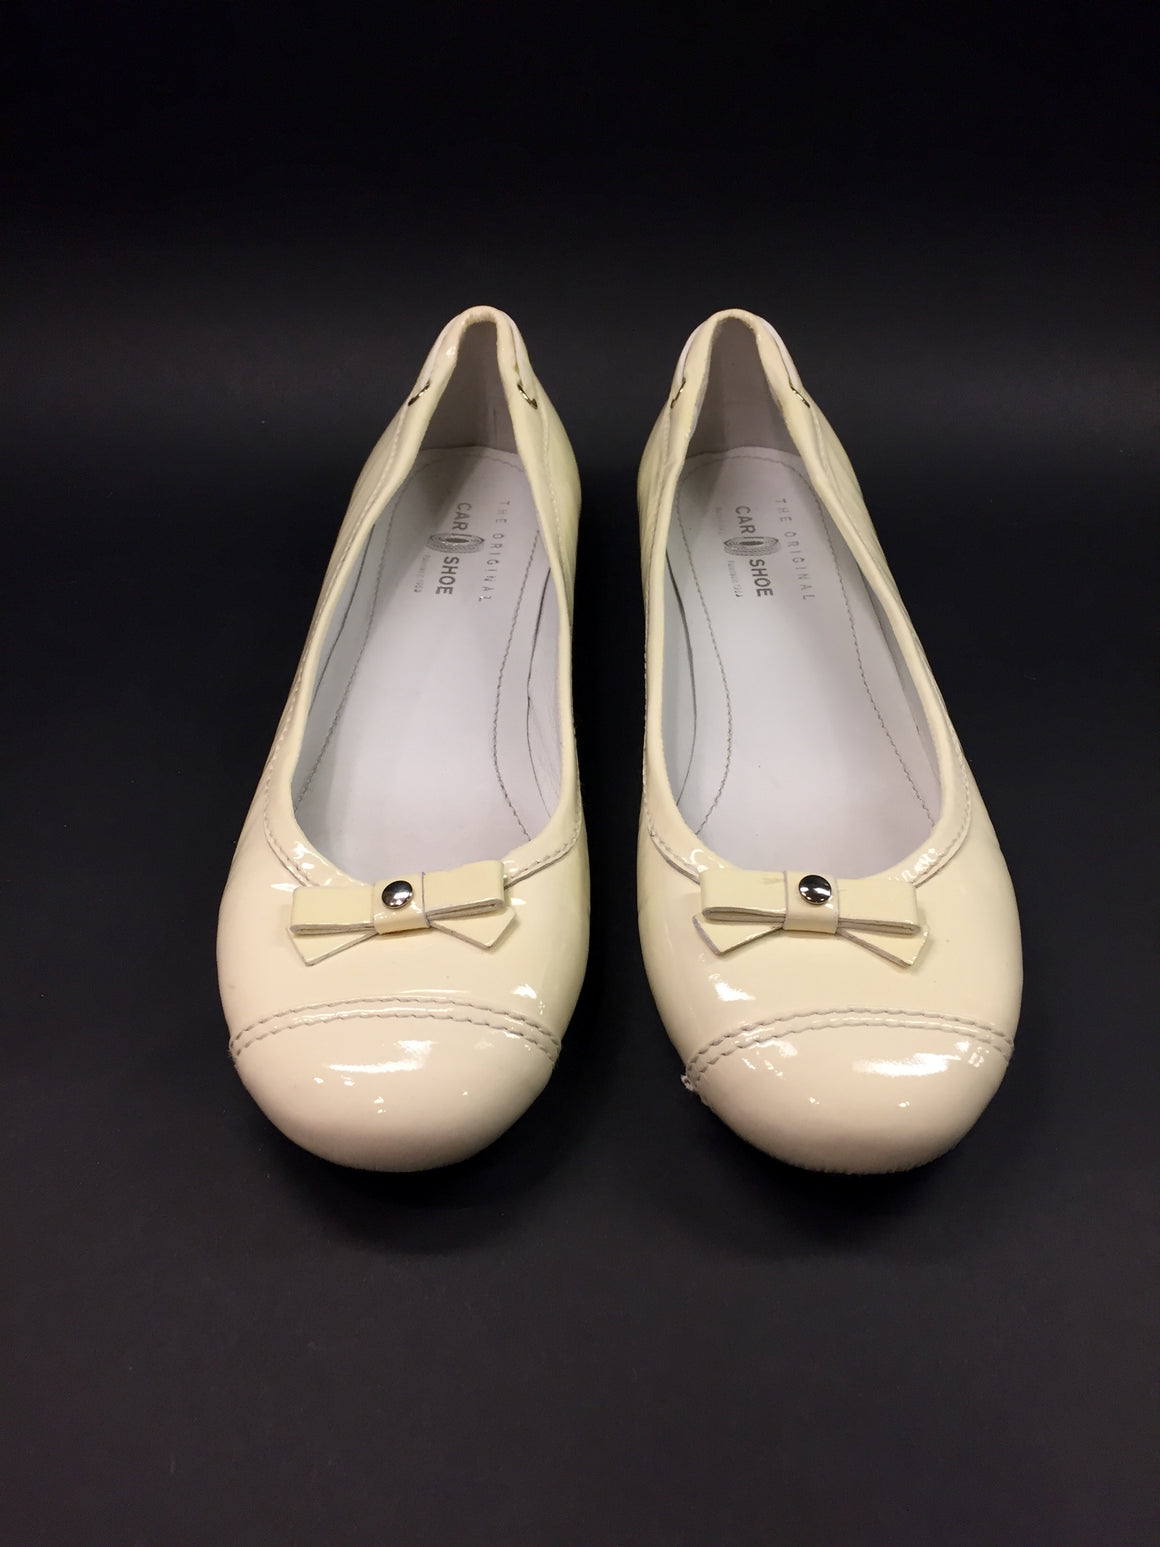 TOD's THE ORIGINAL CAR SHOE TOD'S  Ivory Patent Leather Driving Ballet Flats Shoes  Size: IT 40 / US 10